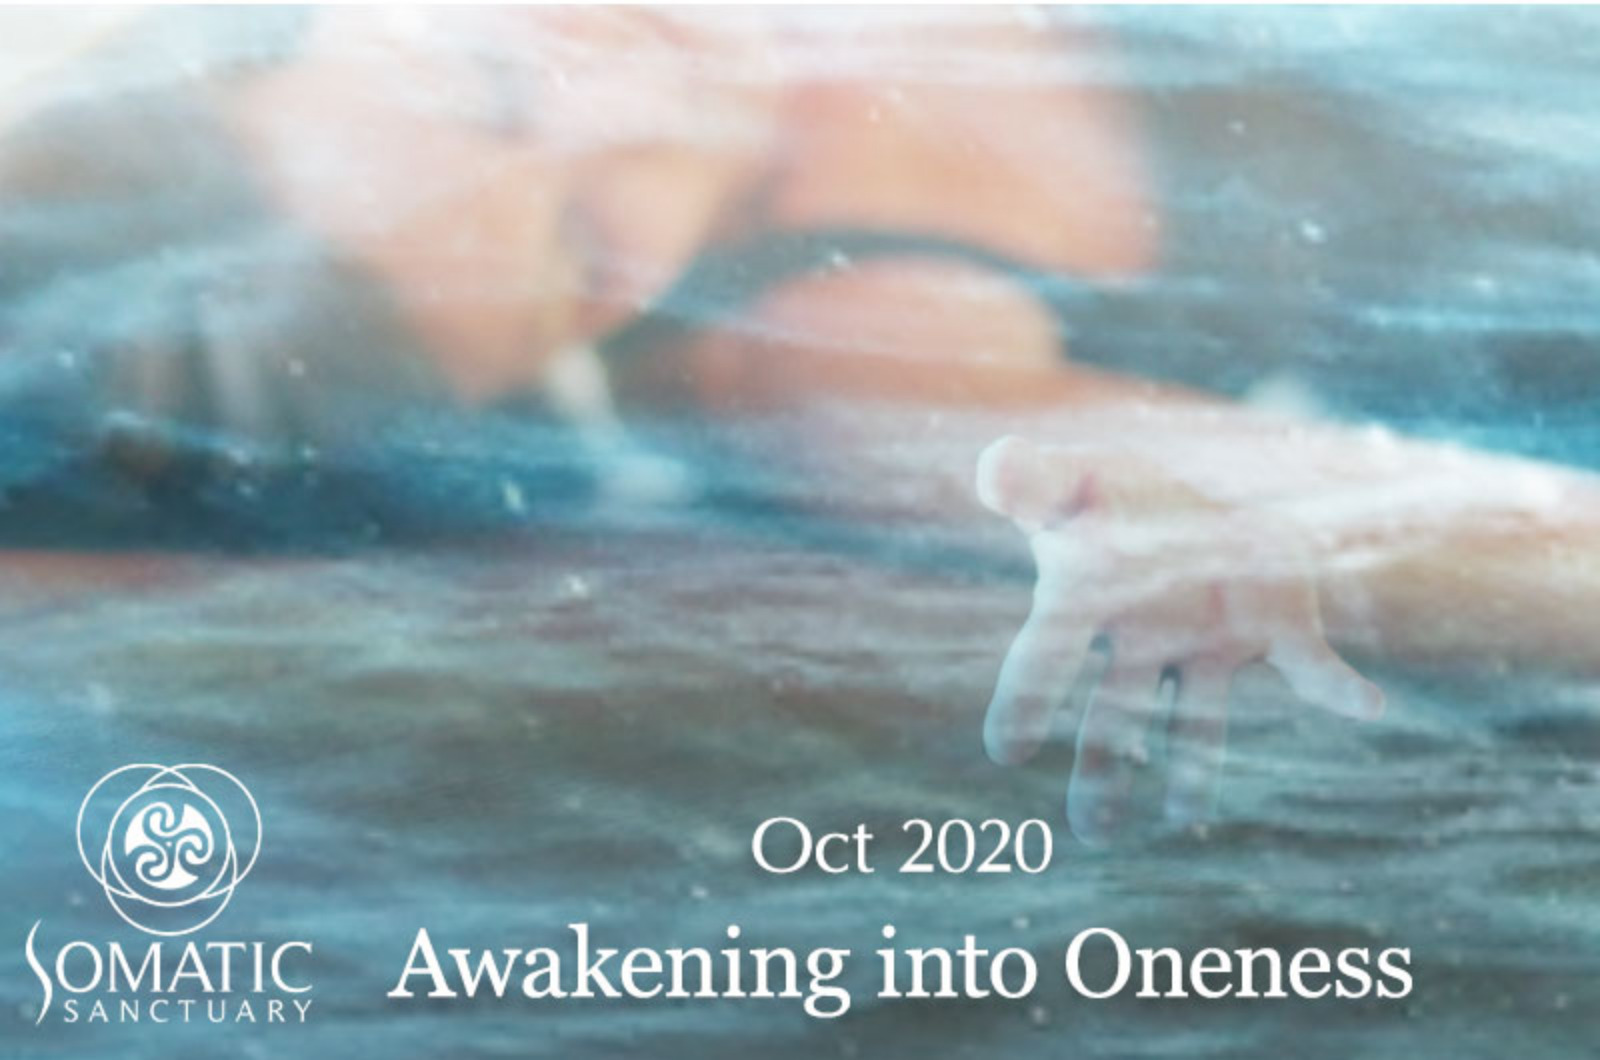 Awakening into Oneness: Oct 2020